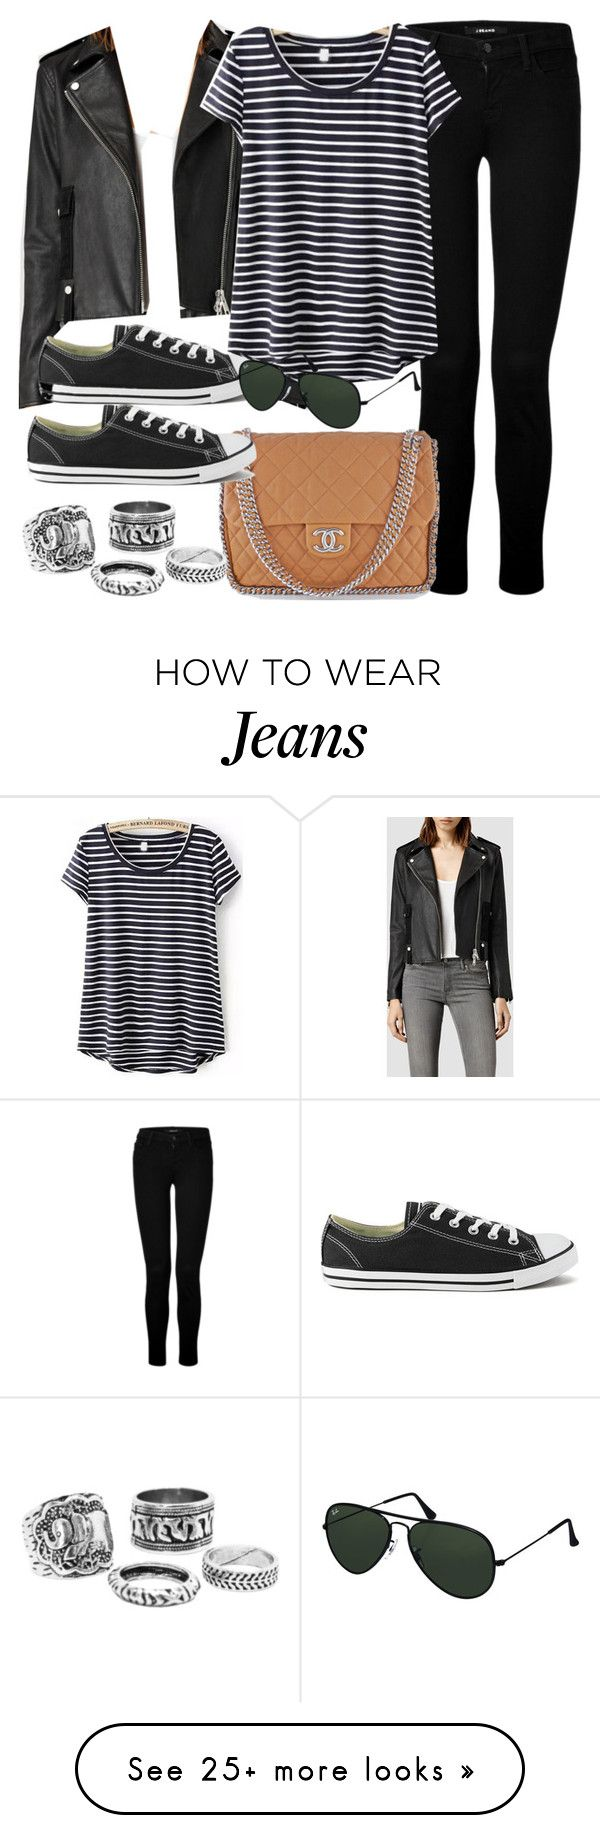 """Style #9322"" by vany-alvarado on Polyvore featuring AllSaints, Converse, J Brand, Chanel and Ray-Ban"